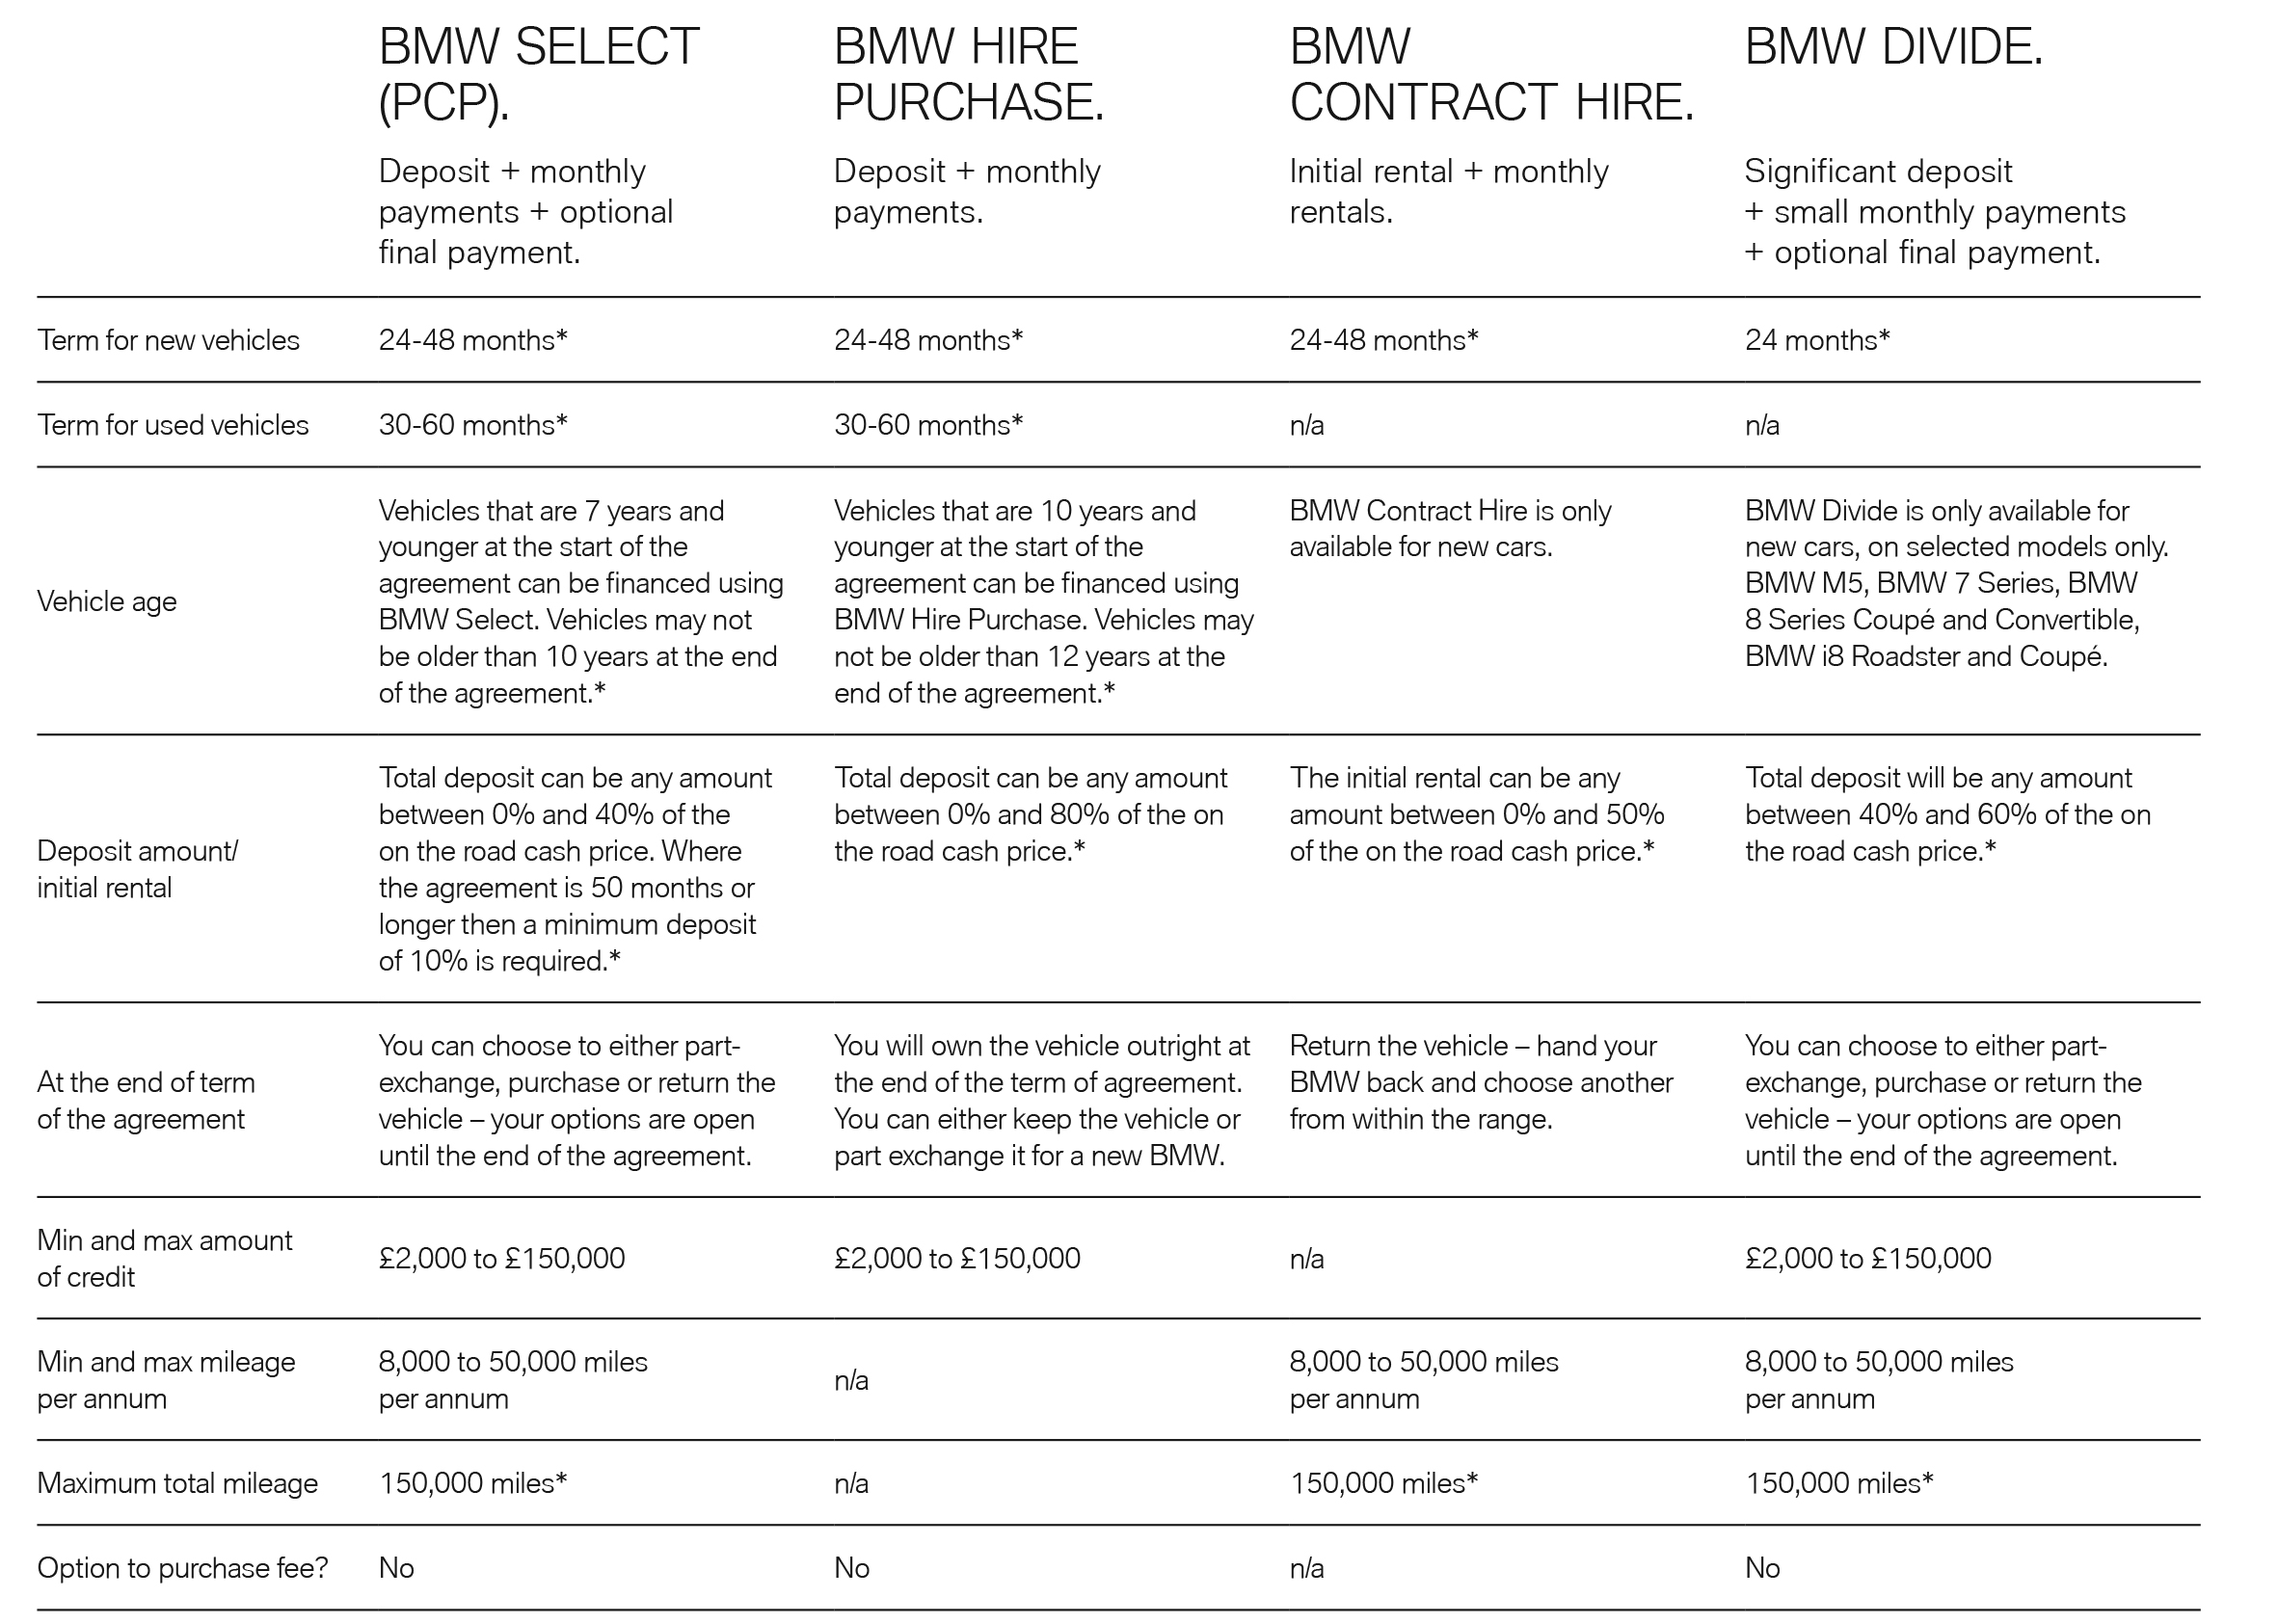 BMW FS Product Comparison table